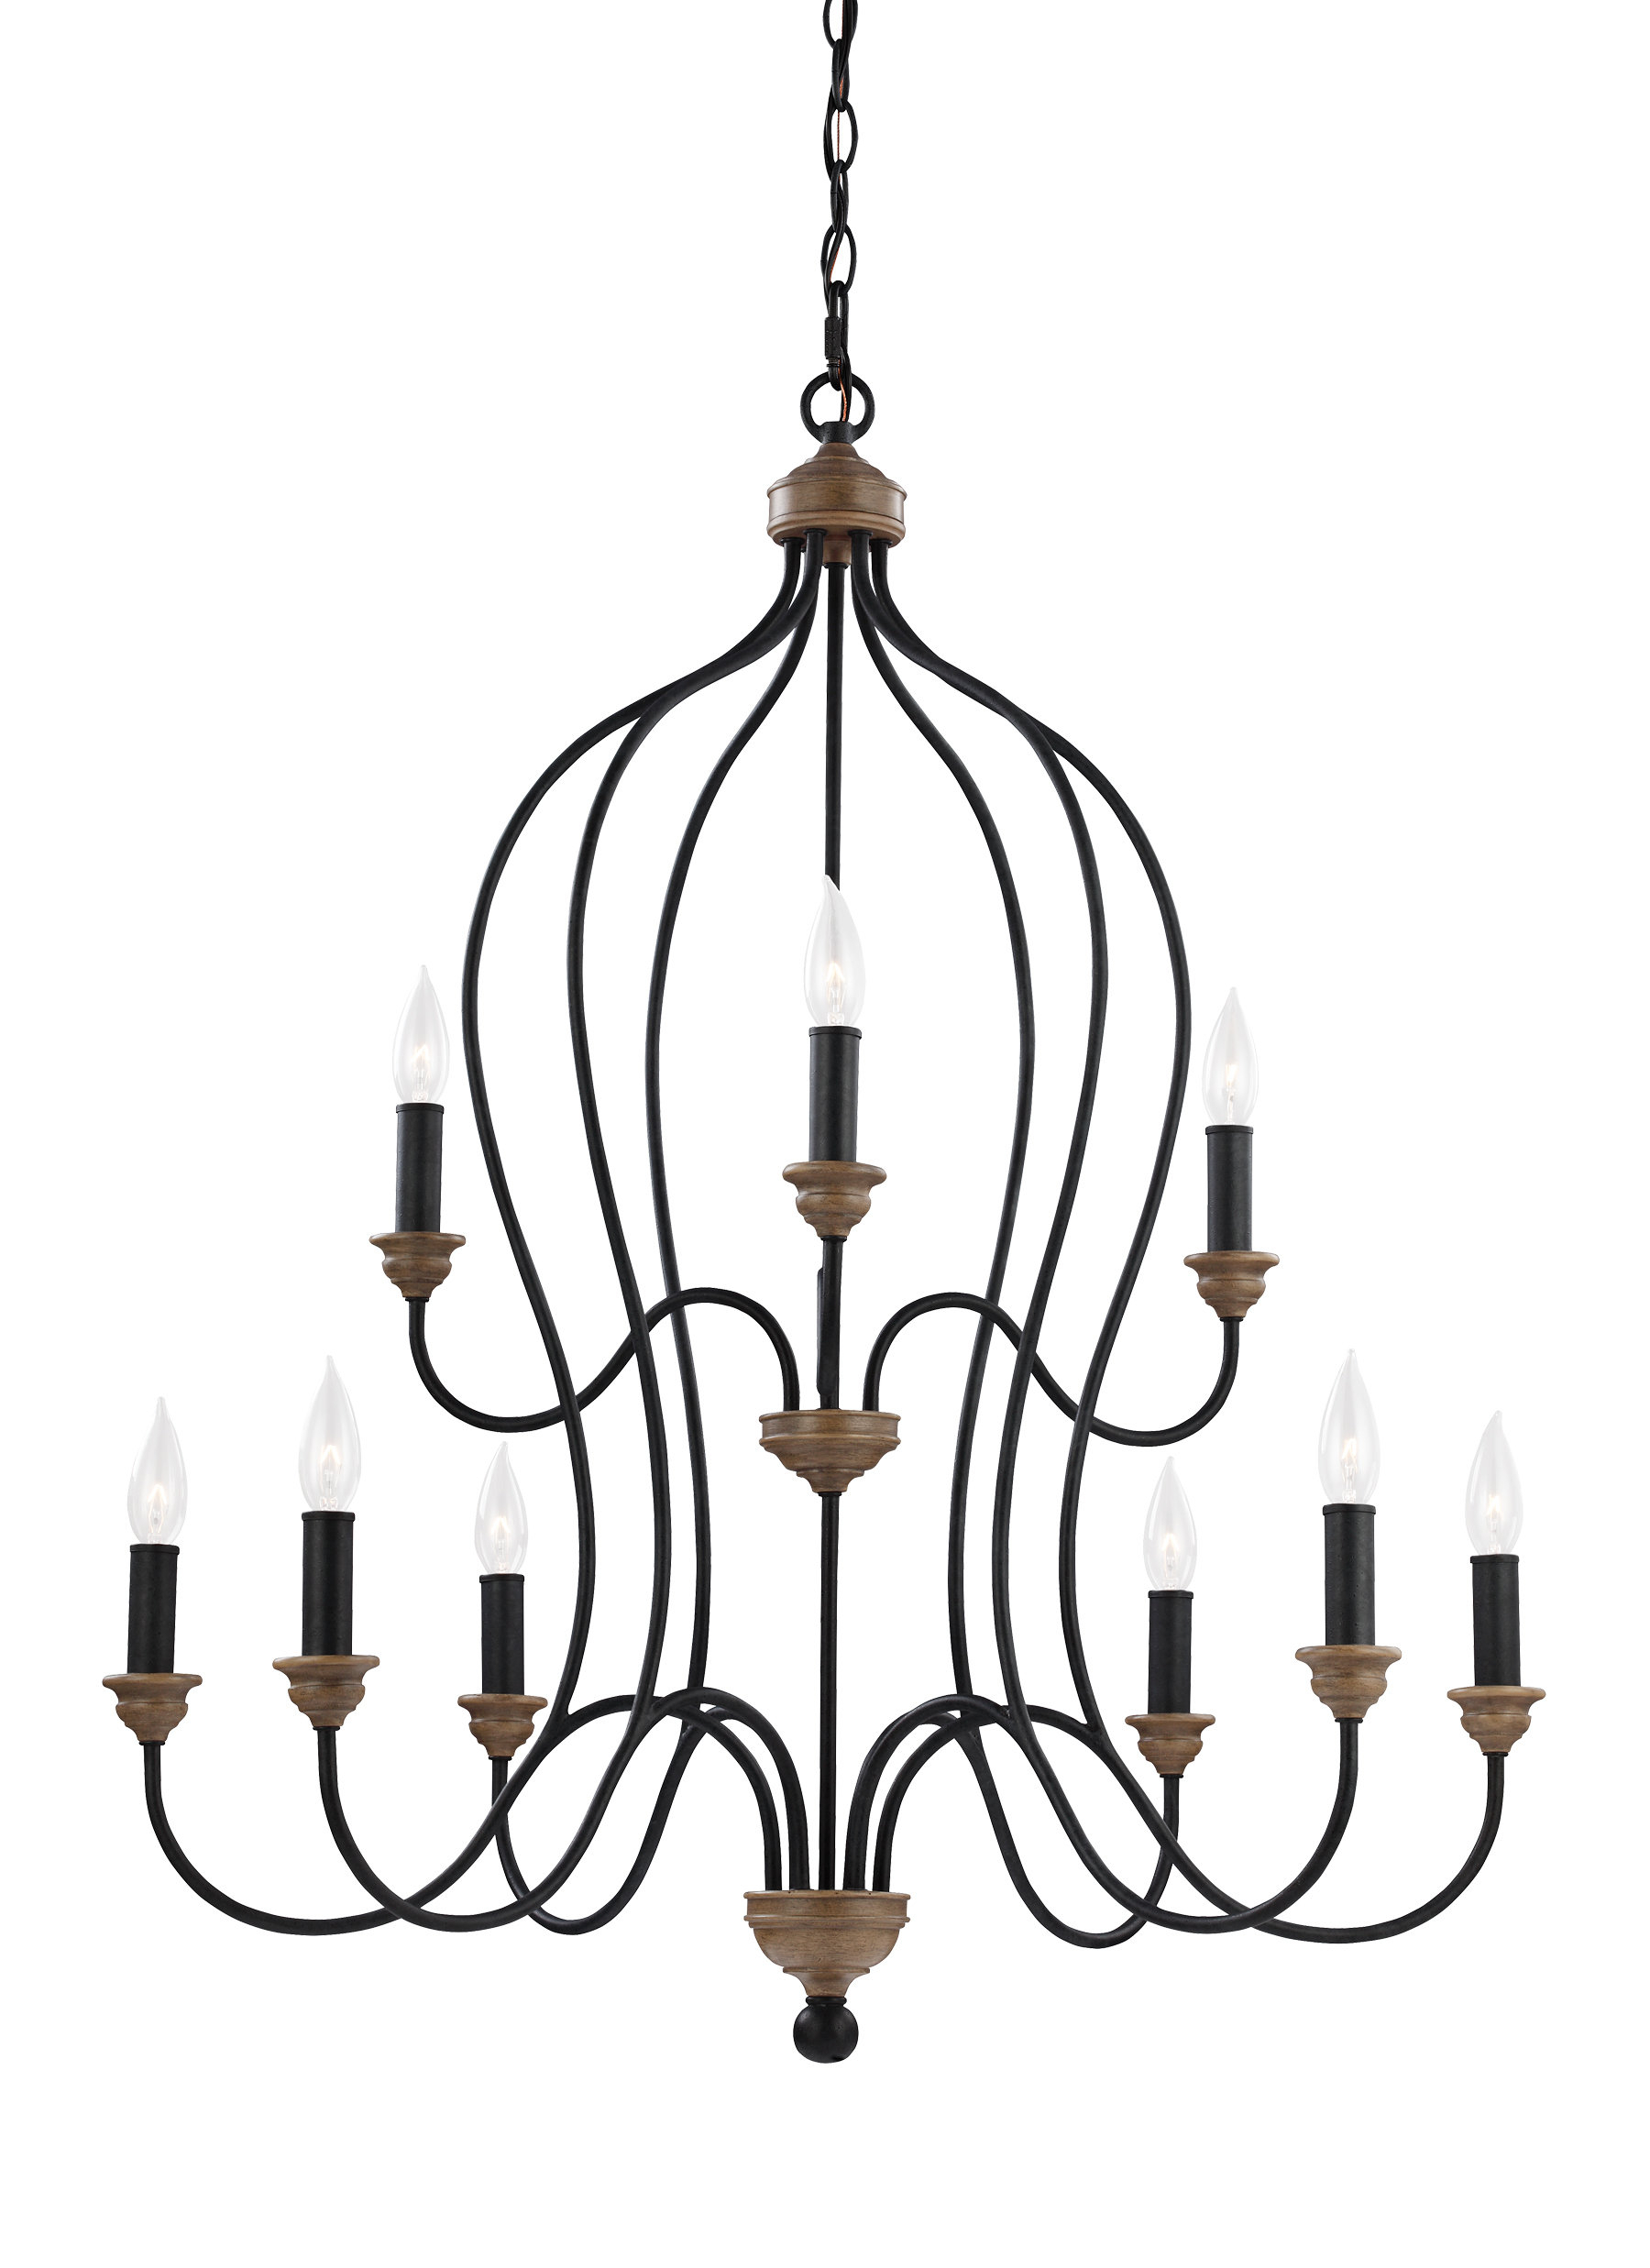 Watford 9 Light Candle Style Chandeliers For Most Current Sundberg 9 Light Candle Style Chandelier (View 15 of 20)